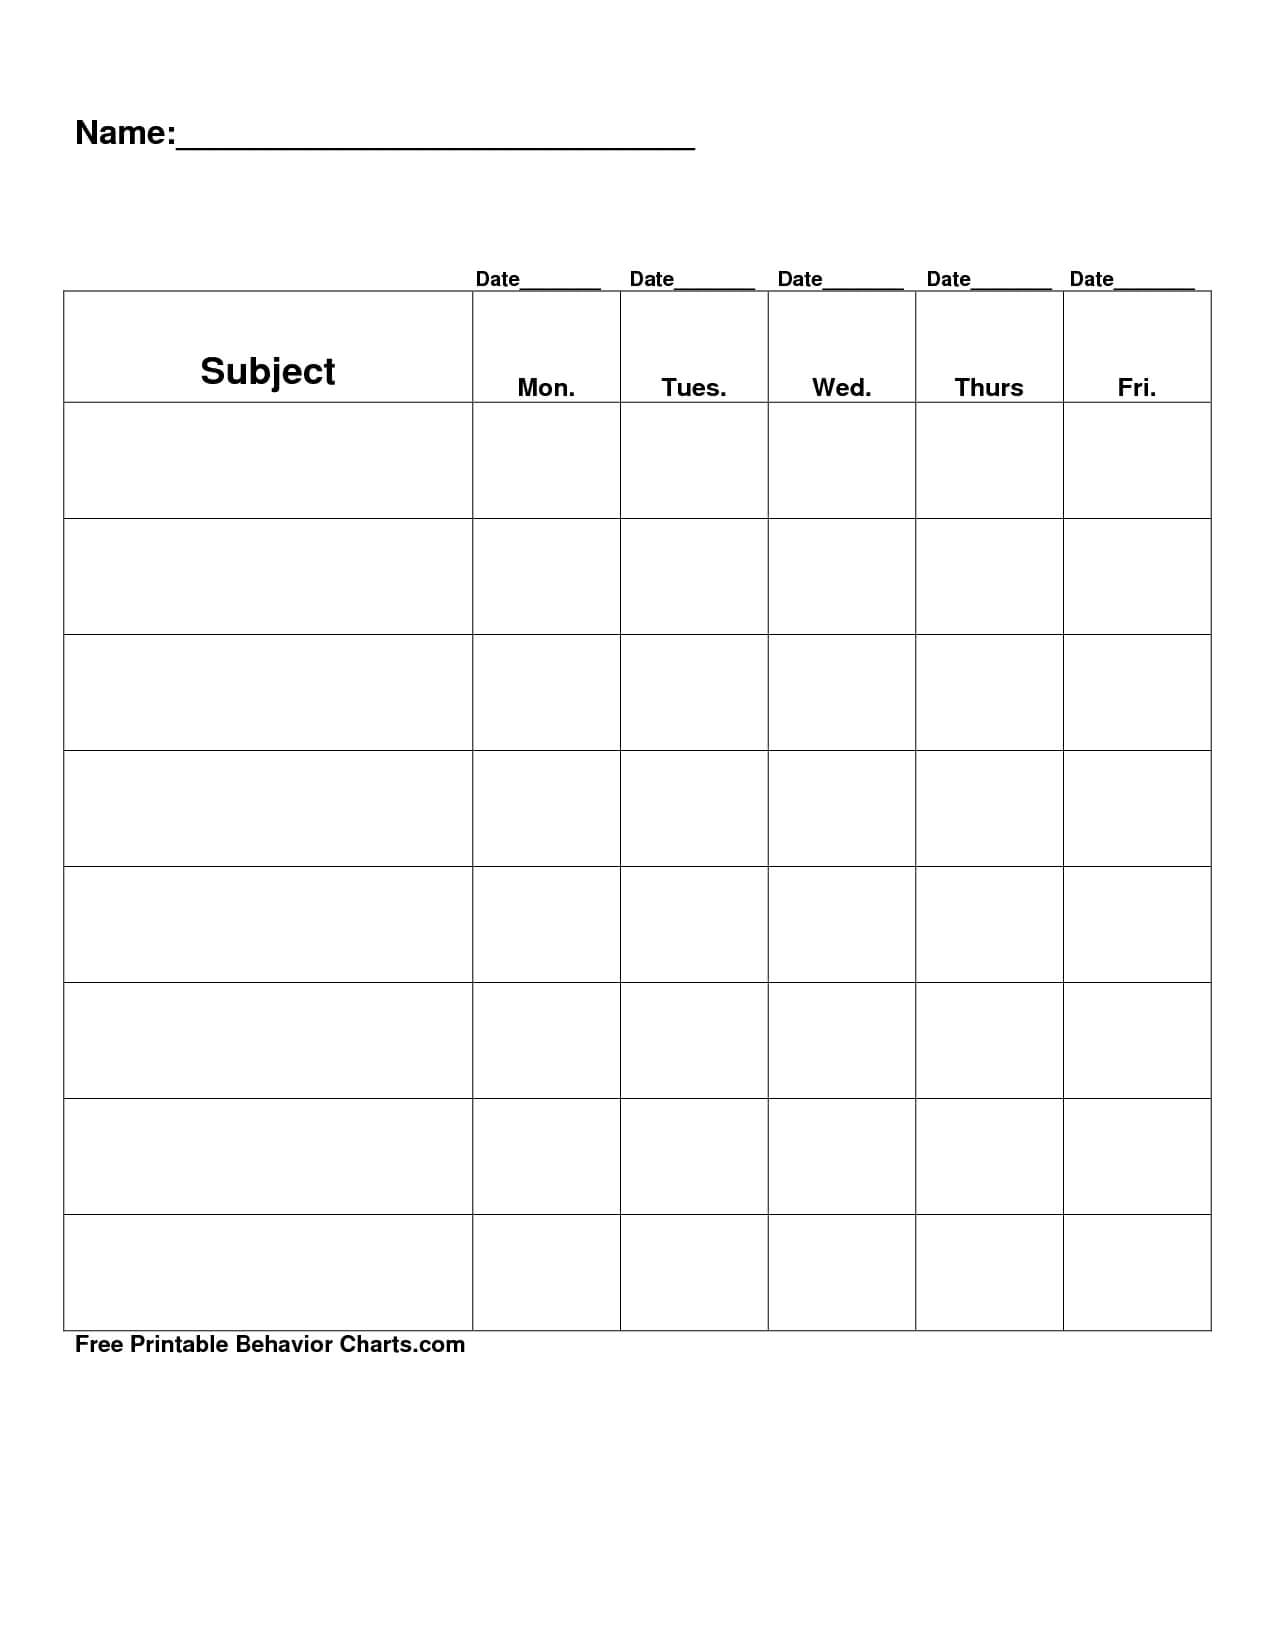 Free Printable Blank Charts | Free Printable Behavior Charts Inside Blank Reward Chart Template